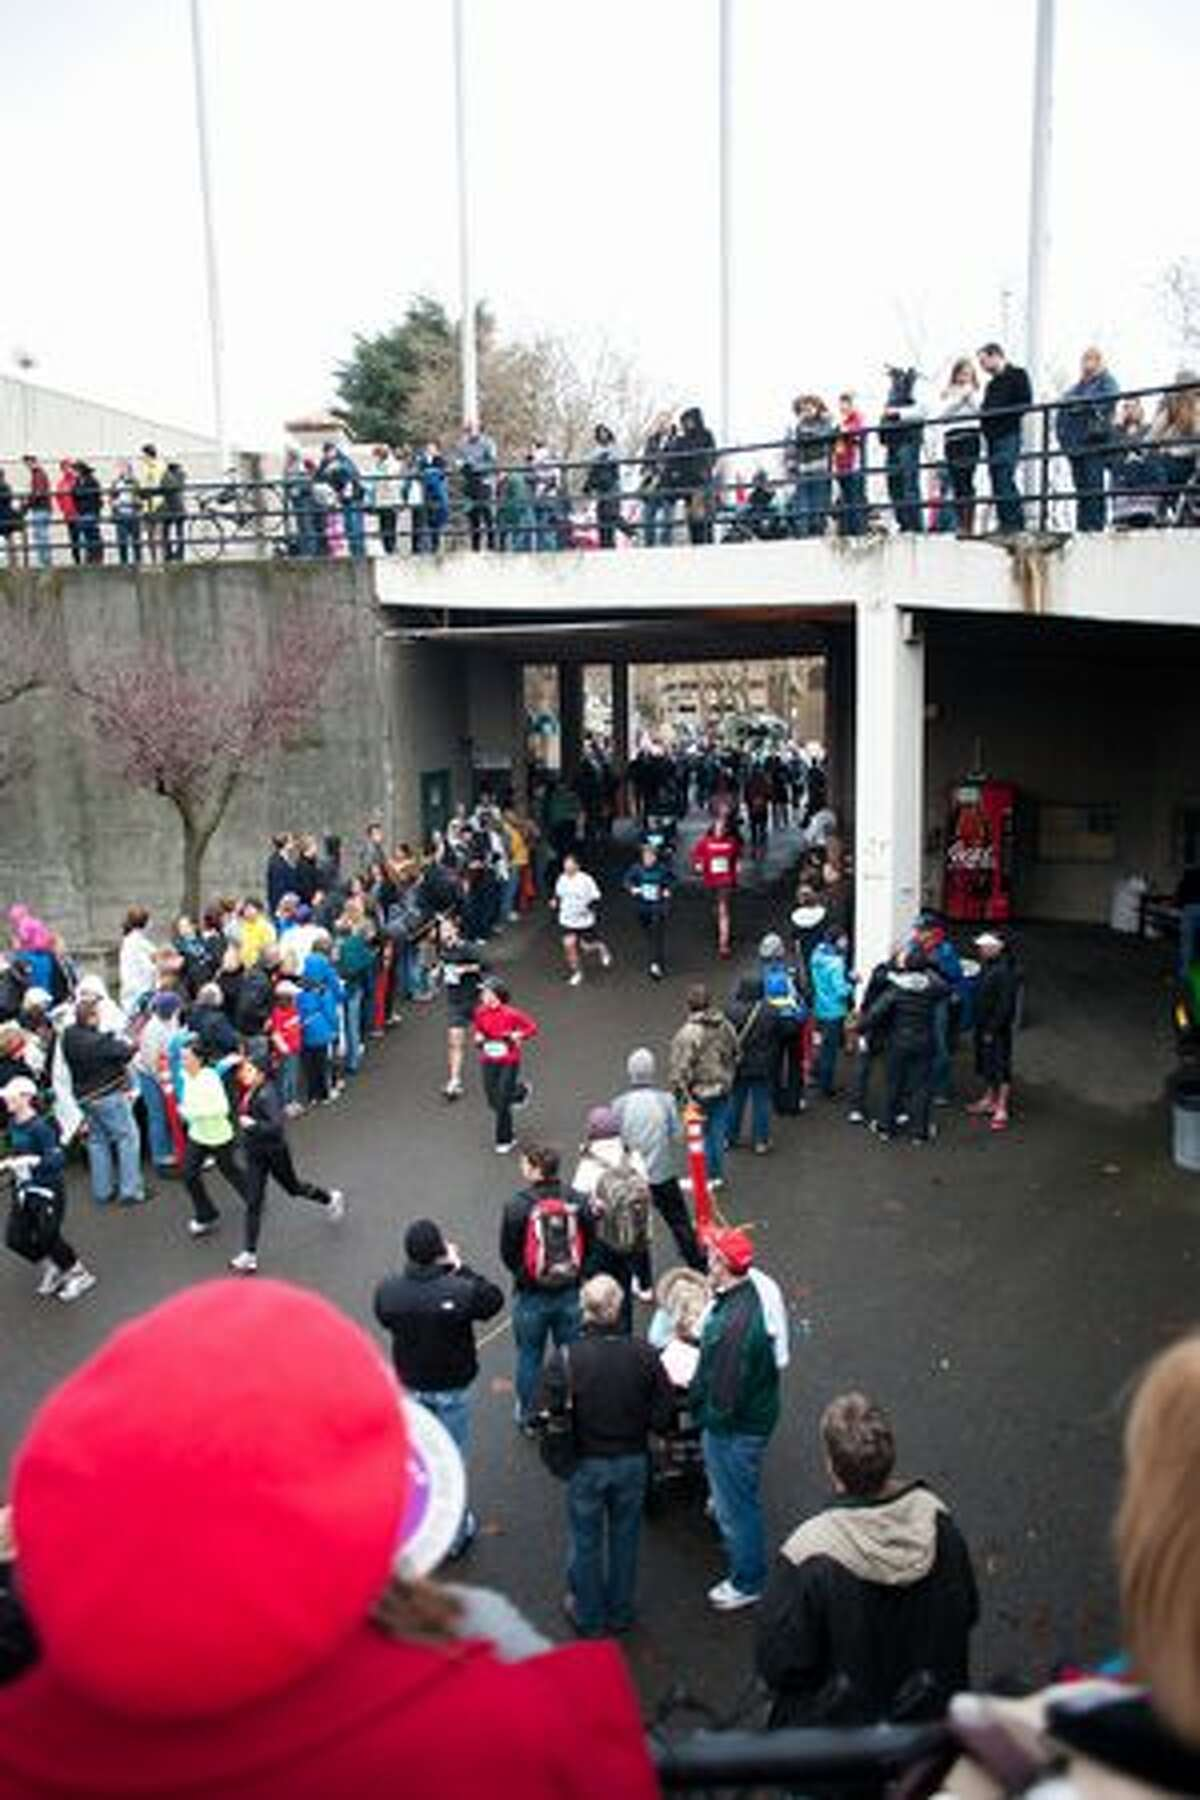 Runners make their way to the finish line at Memorial Stadium.